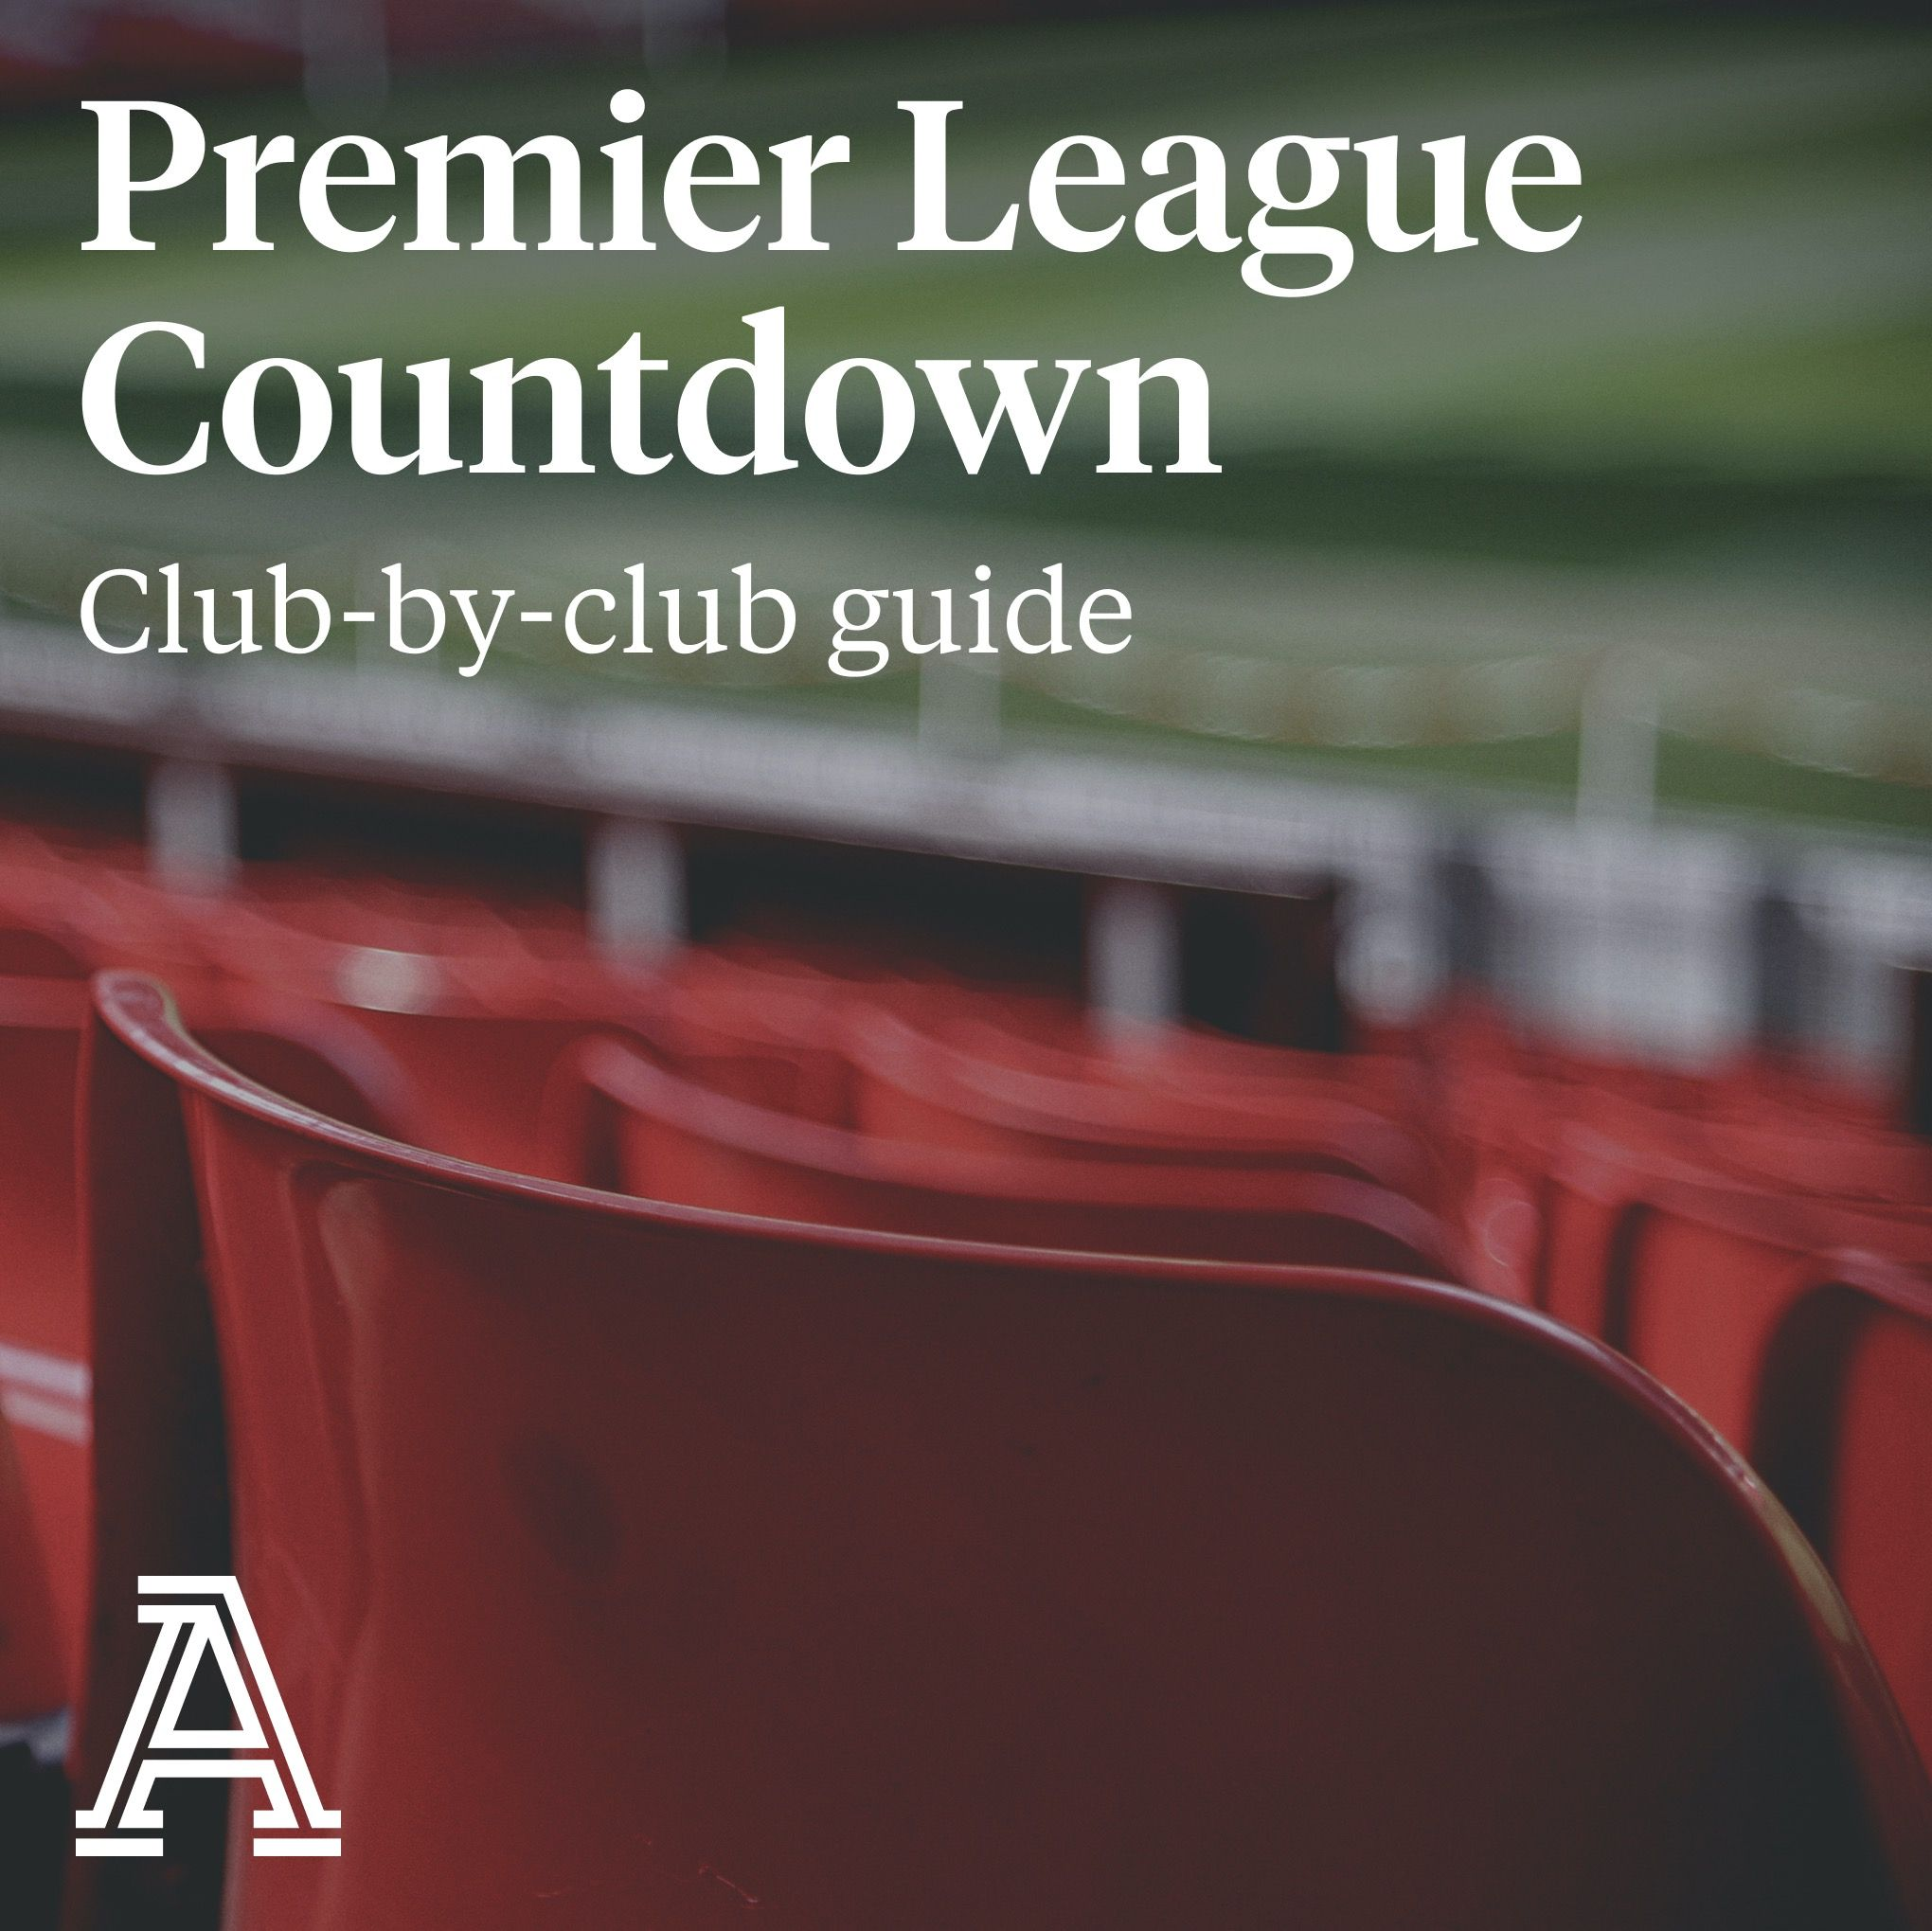 Premier League Countdown - Liverpool